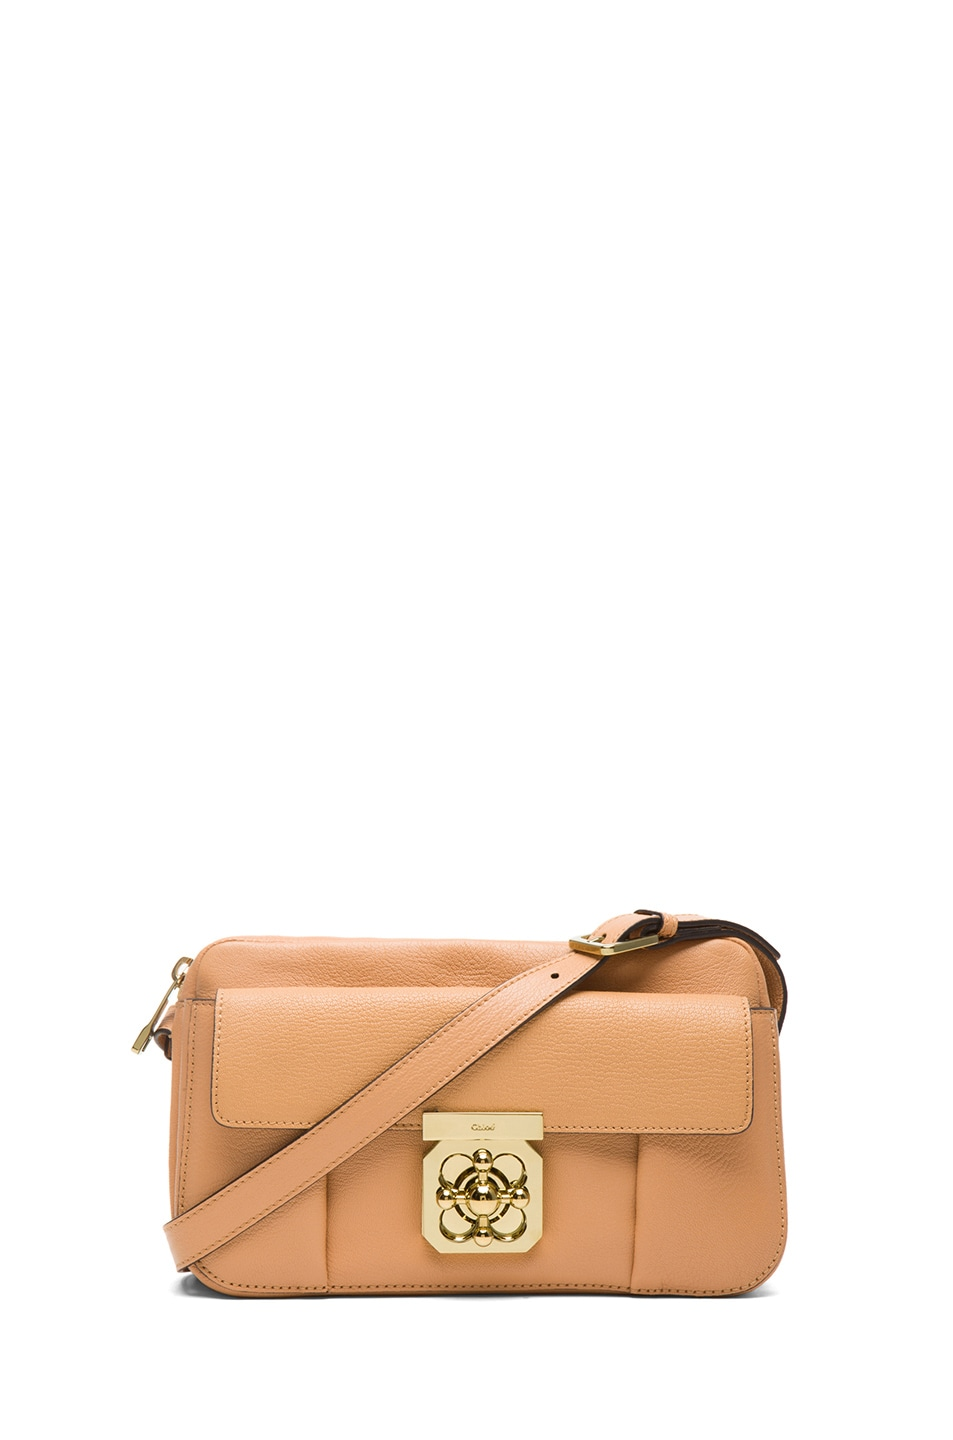 Image 1 of Chloe Medium Elsie Shoulder Bag in Rose Milk